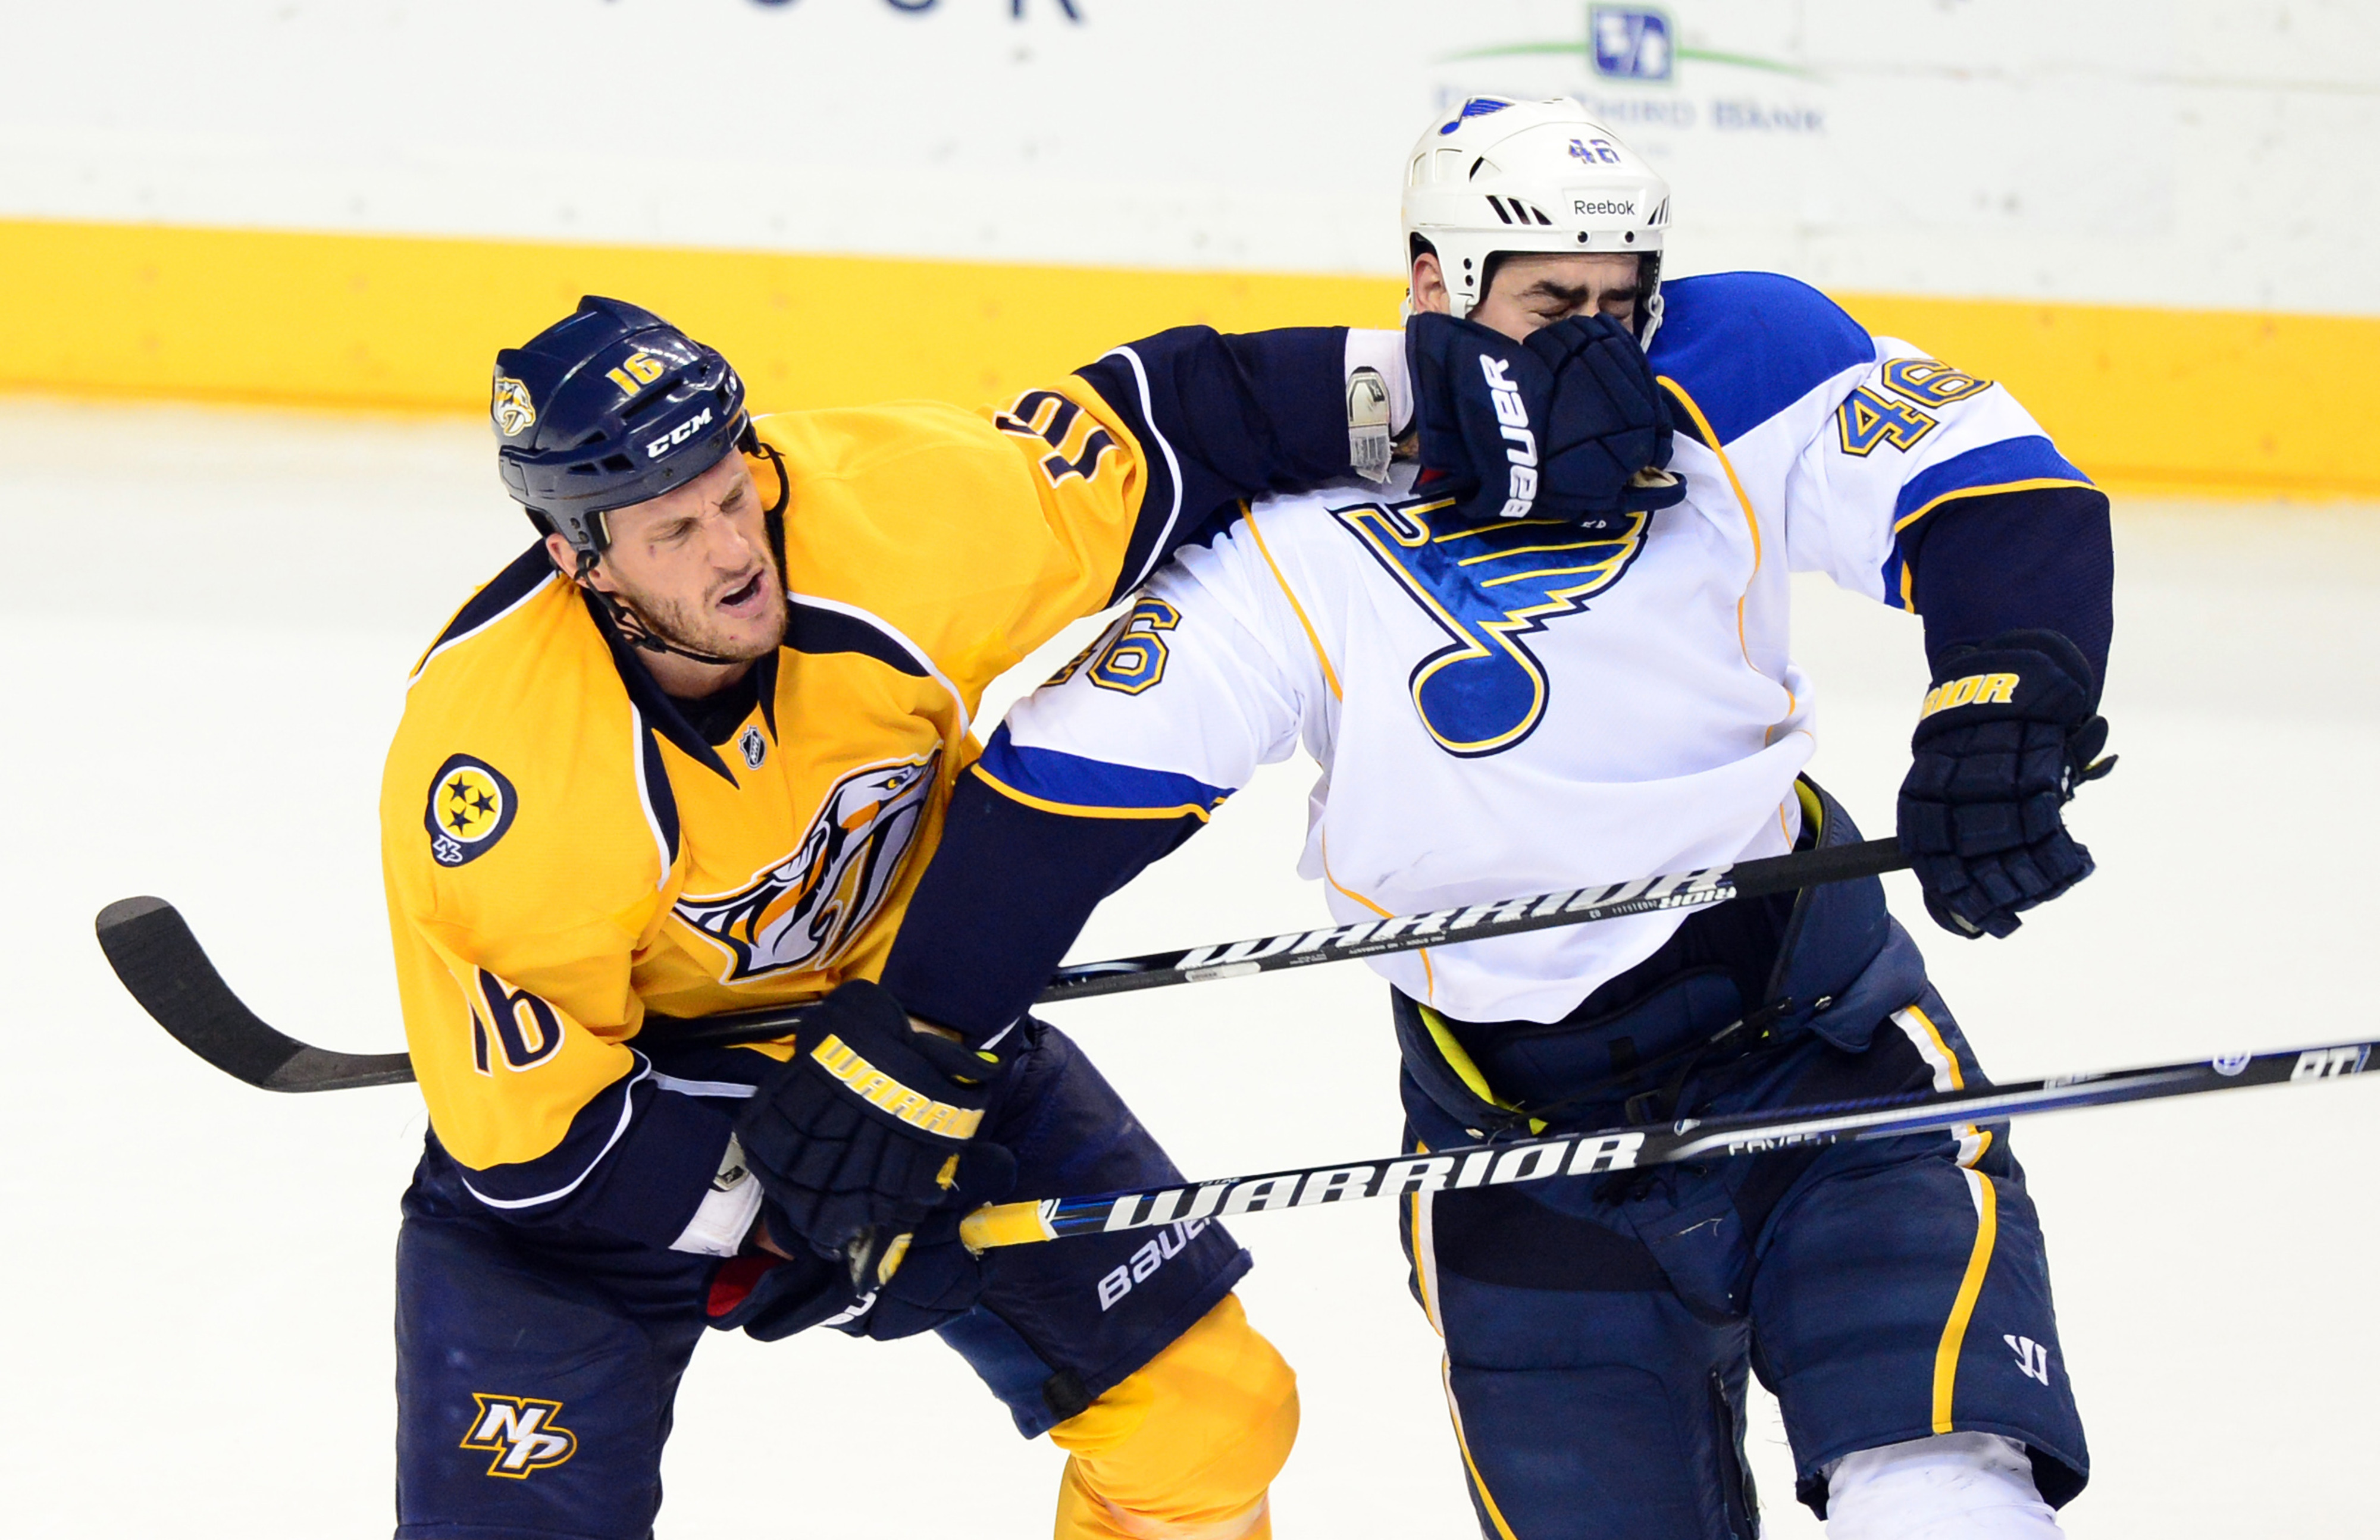 Rich Clune aims to become the NHL's #1 pest this season.